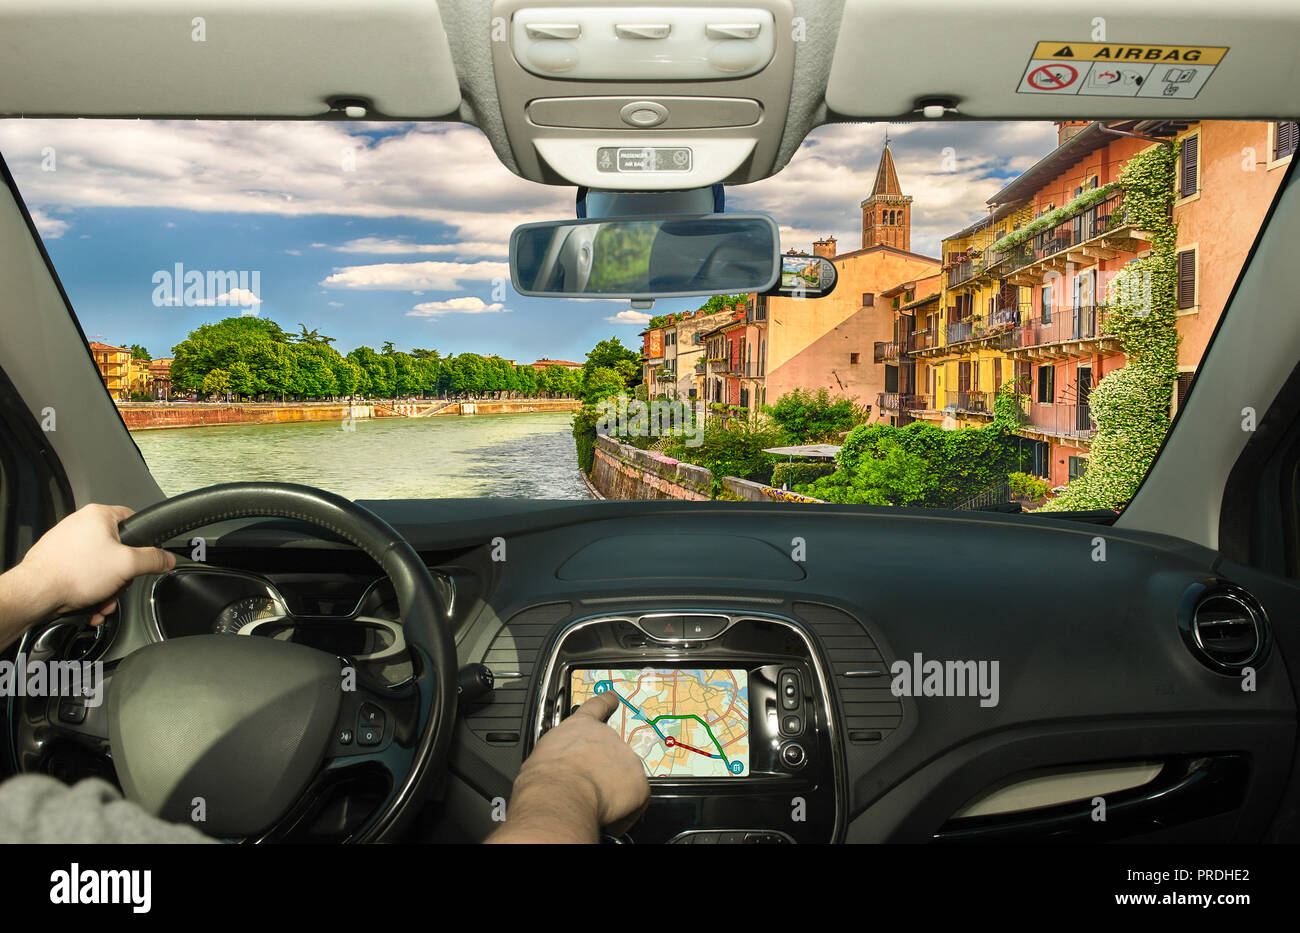 Driving a car while using the touch screen of a GPS navigation system in Verona, Italy - Stock Image